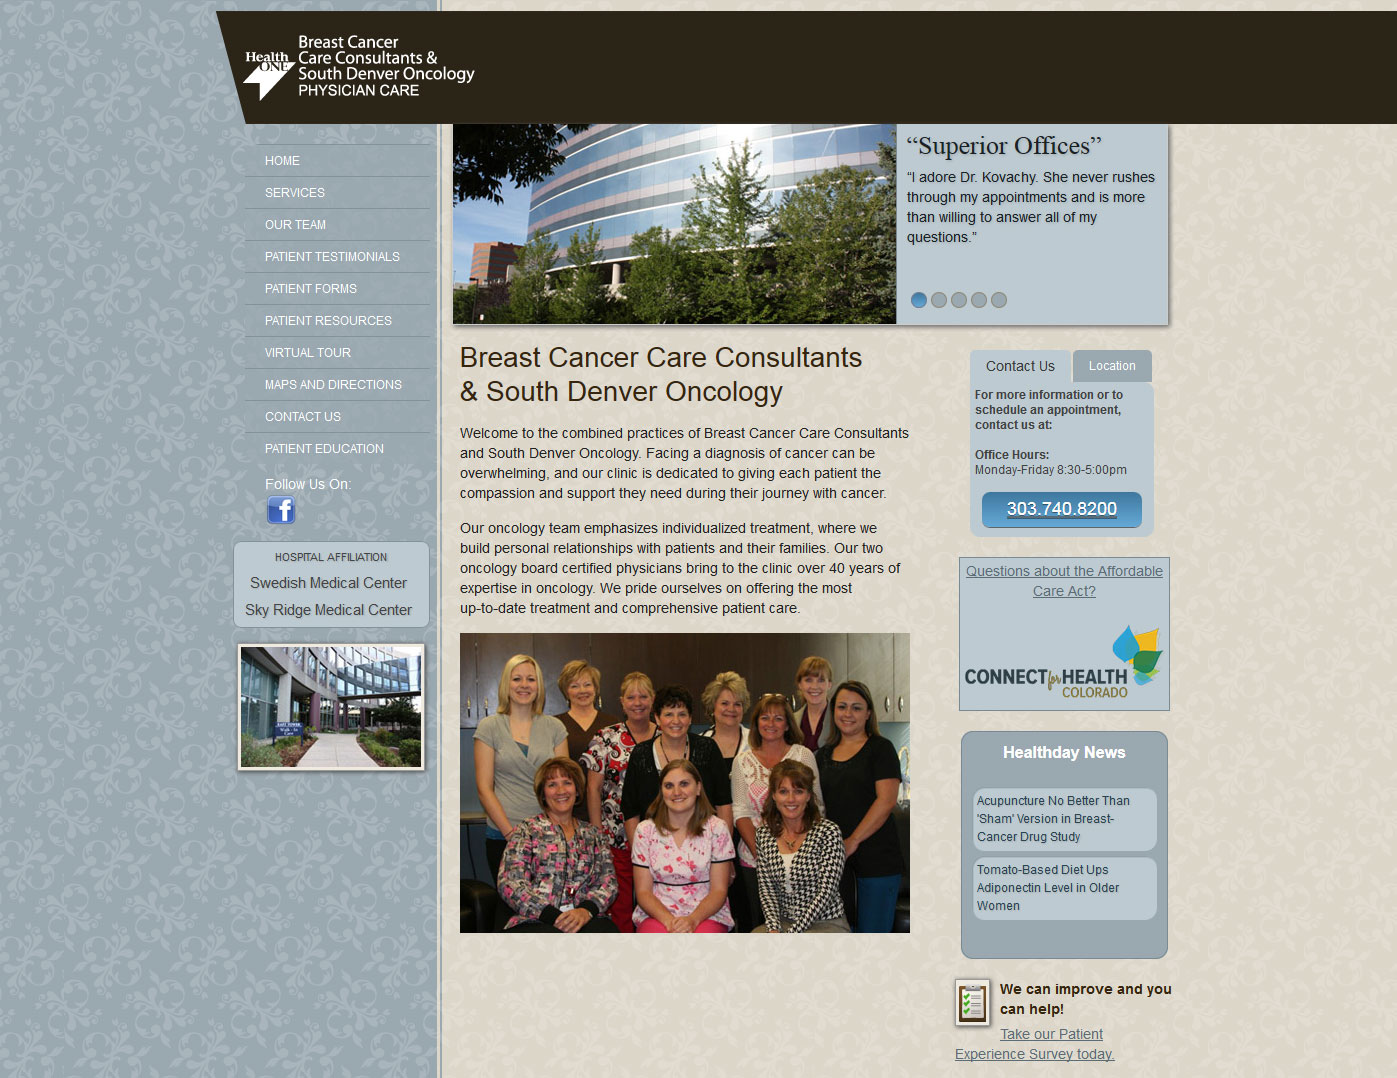 Breast Cancer Care Consultants & South Denver Oncology